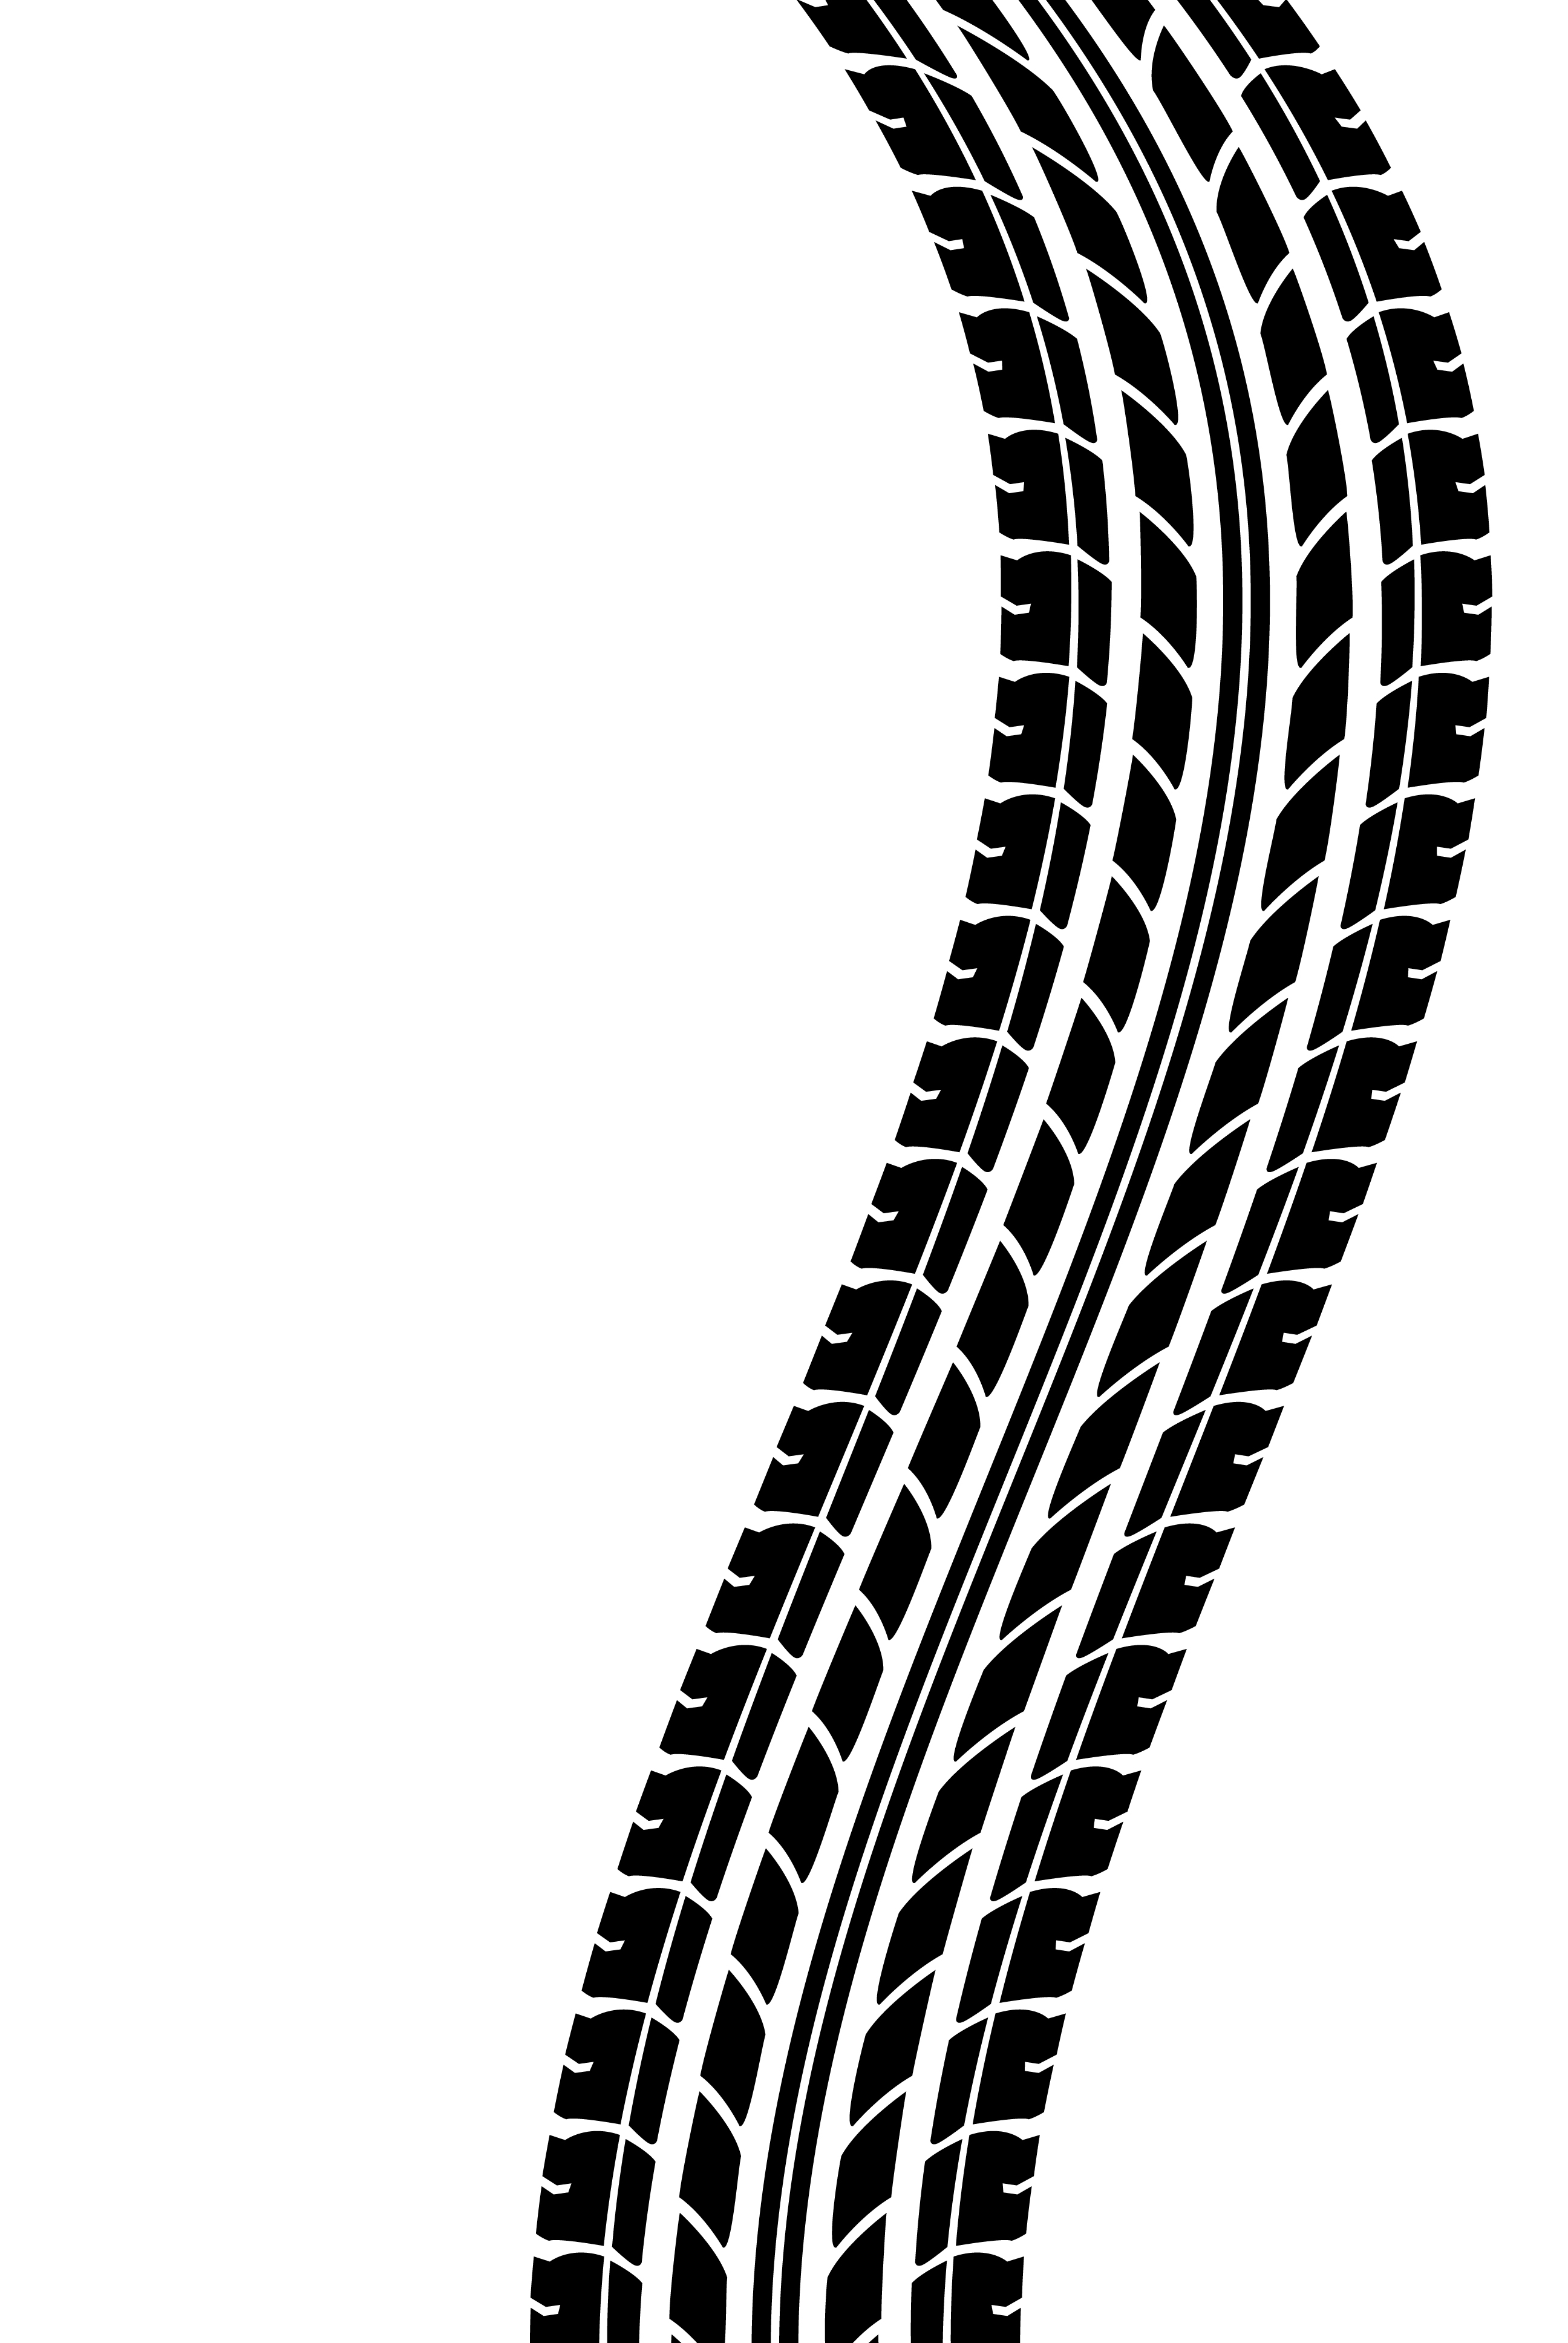 Jeep Clipart Tread Jeep Tread Transparent Free For Download On Webstockreview 2021